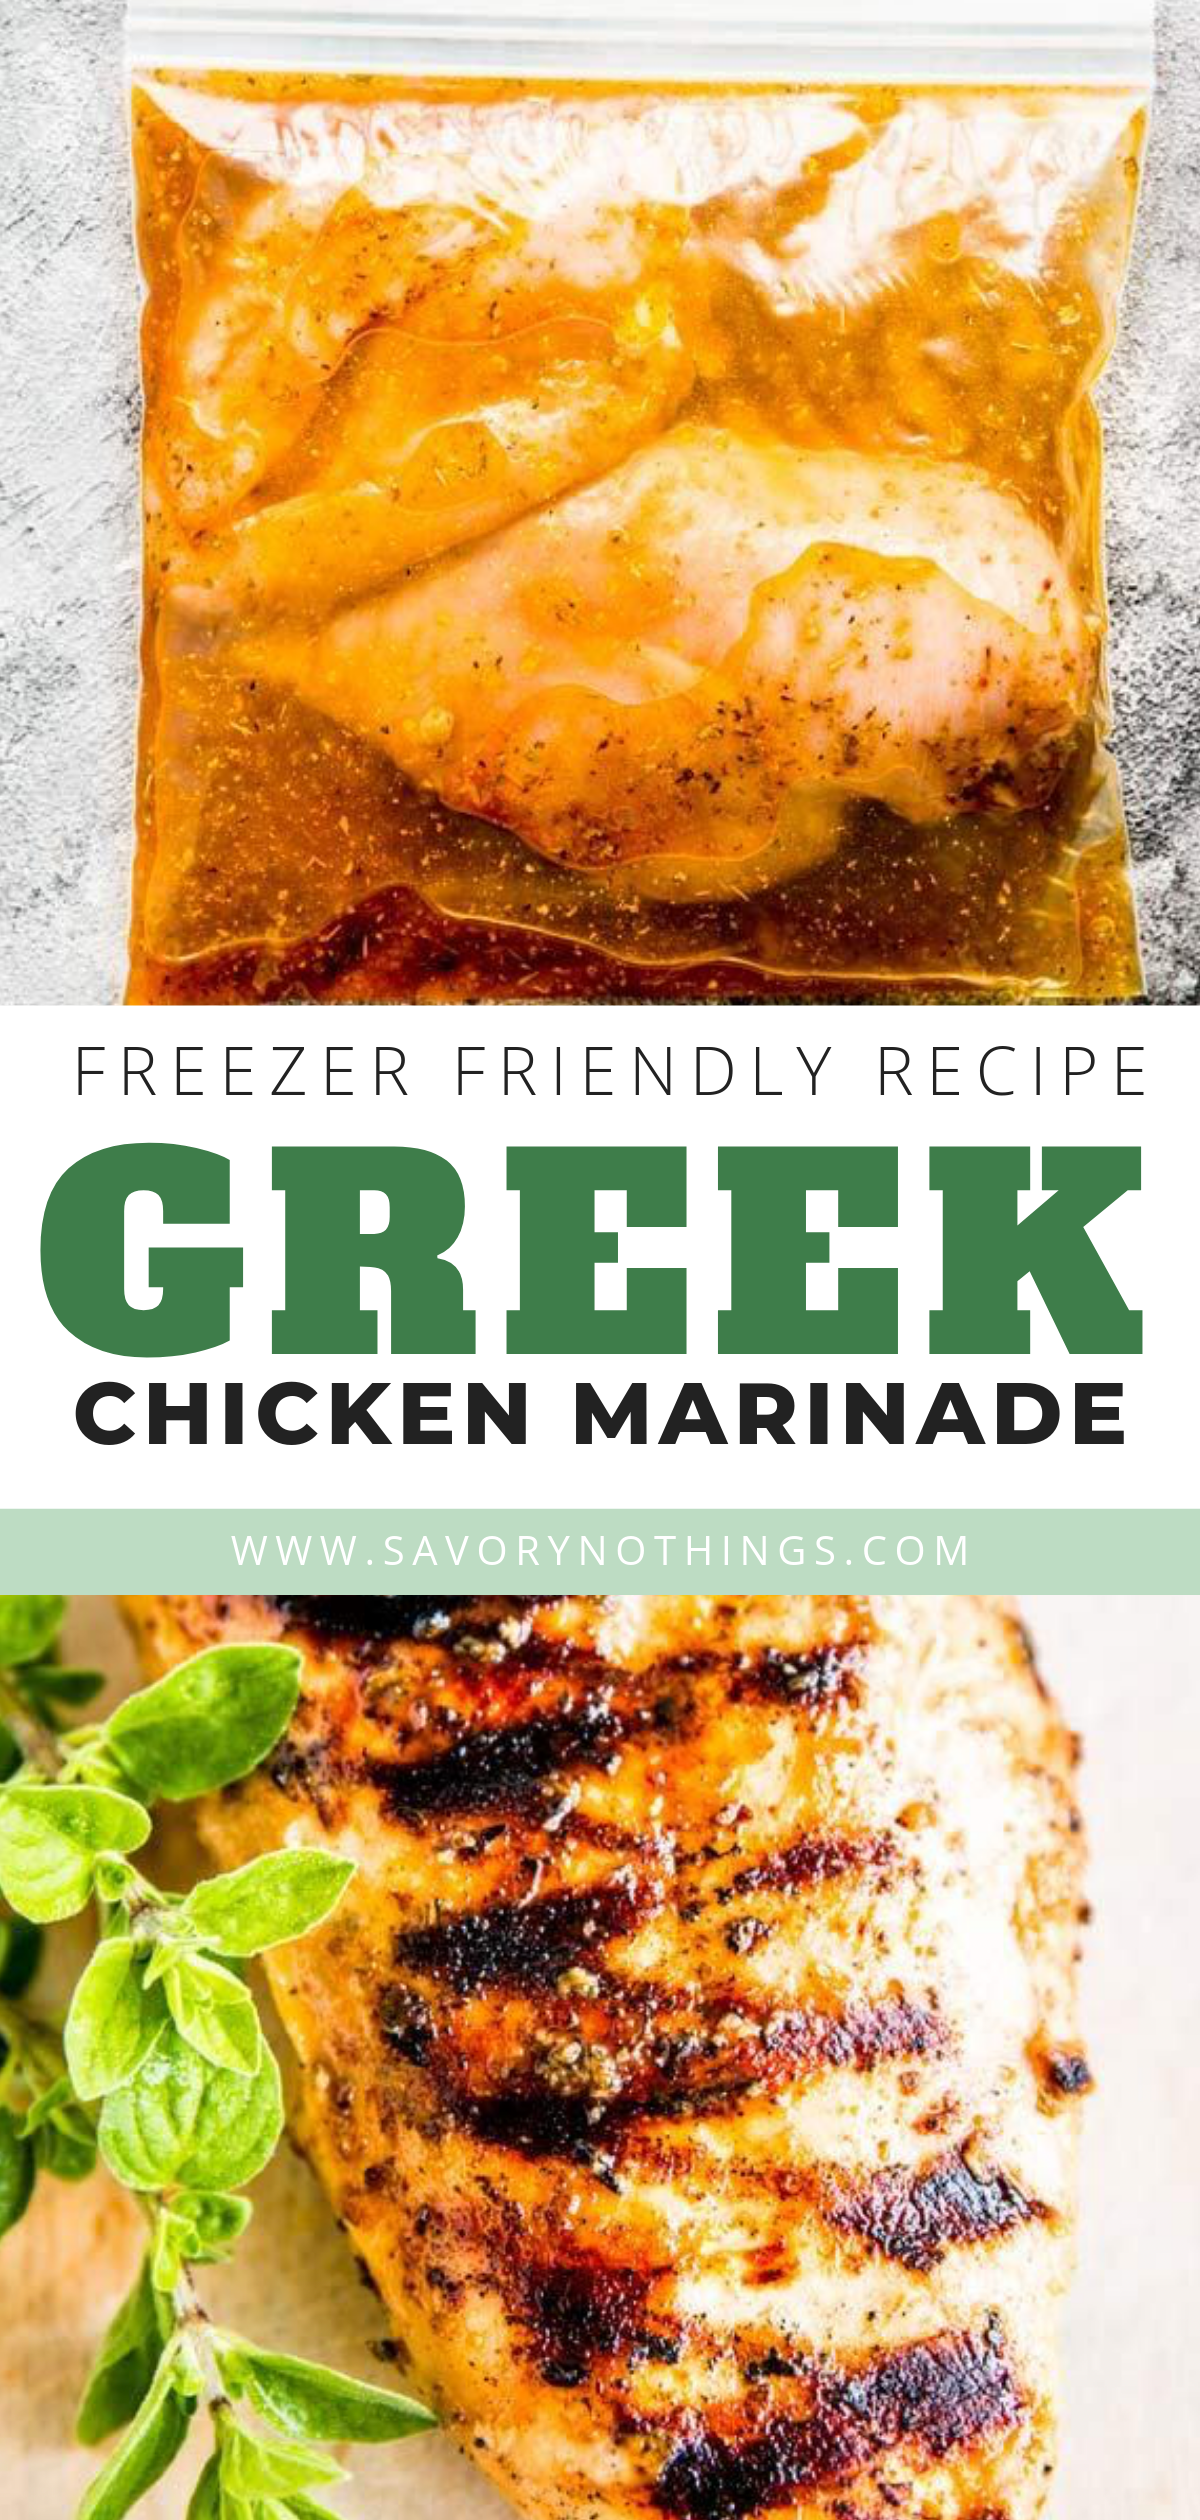 Greek Chicken Marinade is an easy and delicious marinade for pan fried or grilled chicken. It's a great way to keep your grilling events on the healthy side, because it's made with all real-food, natural ingredients. You probably have everything on hand already – perfect to make your next BBQ cookout absolutely hassle-free! |